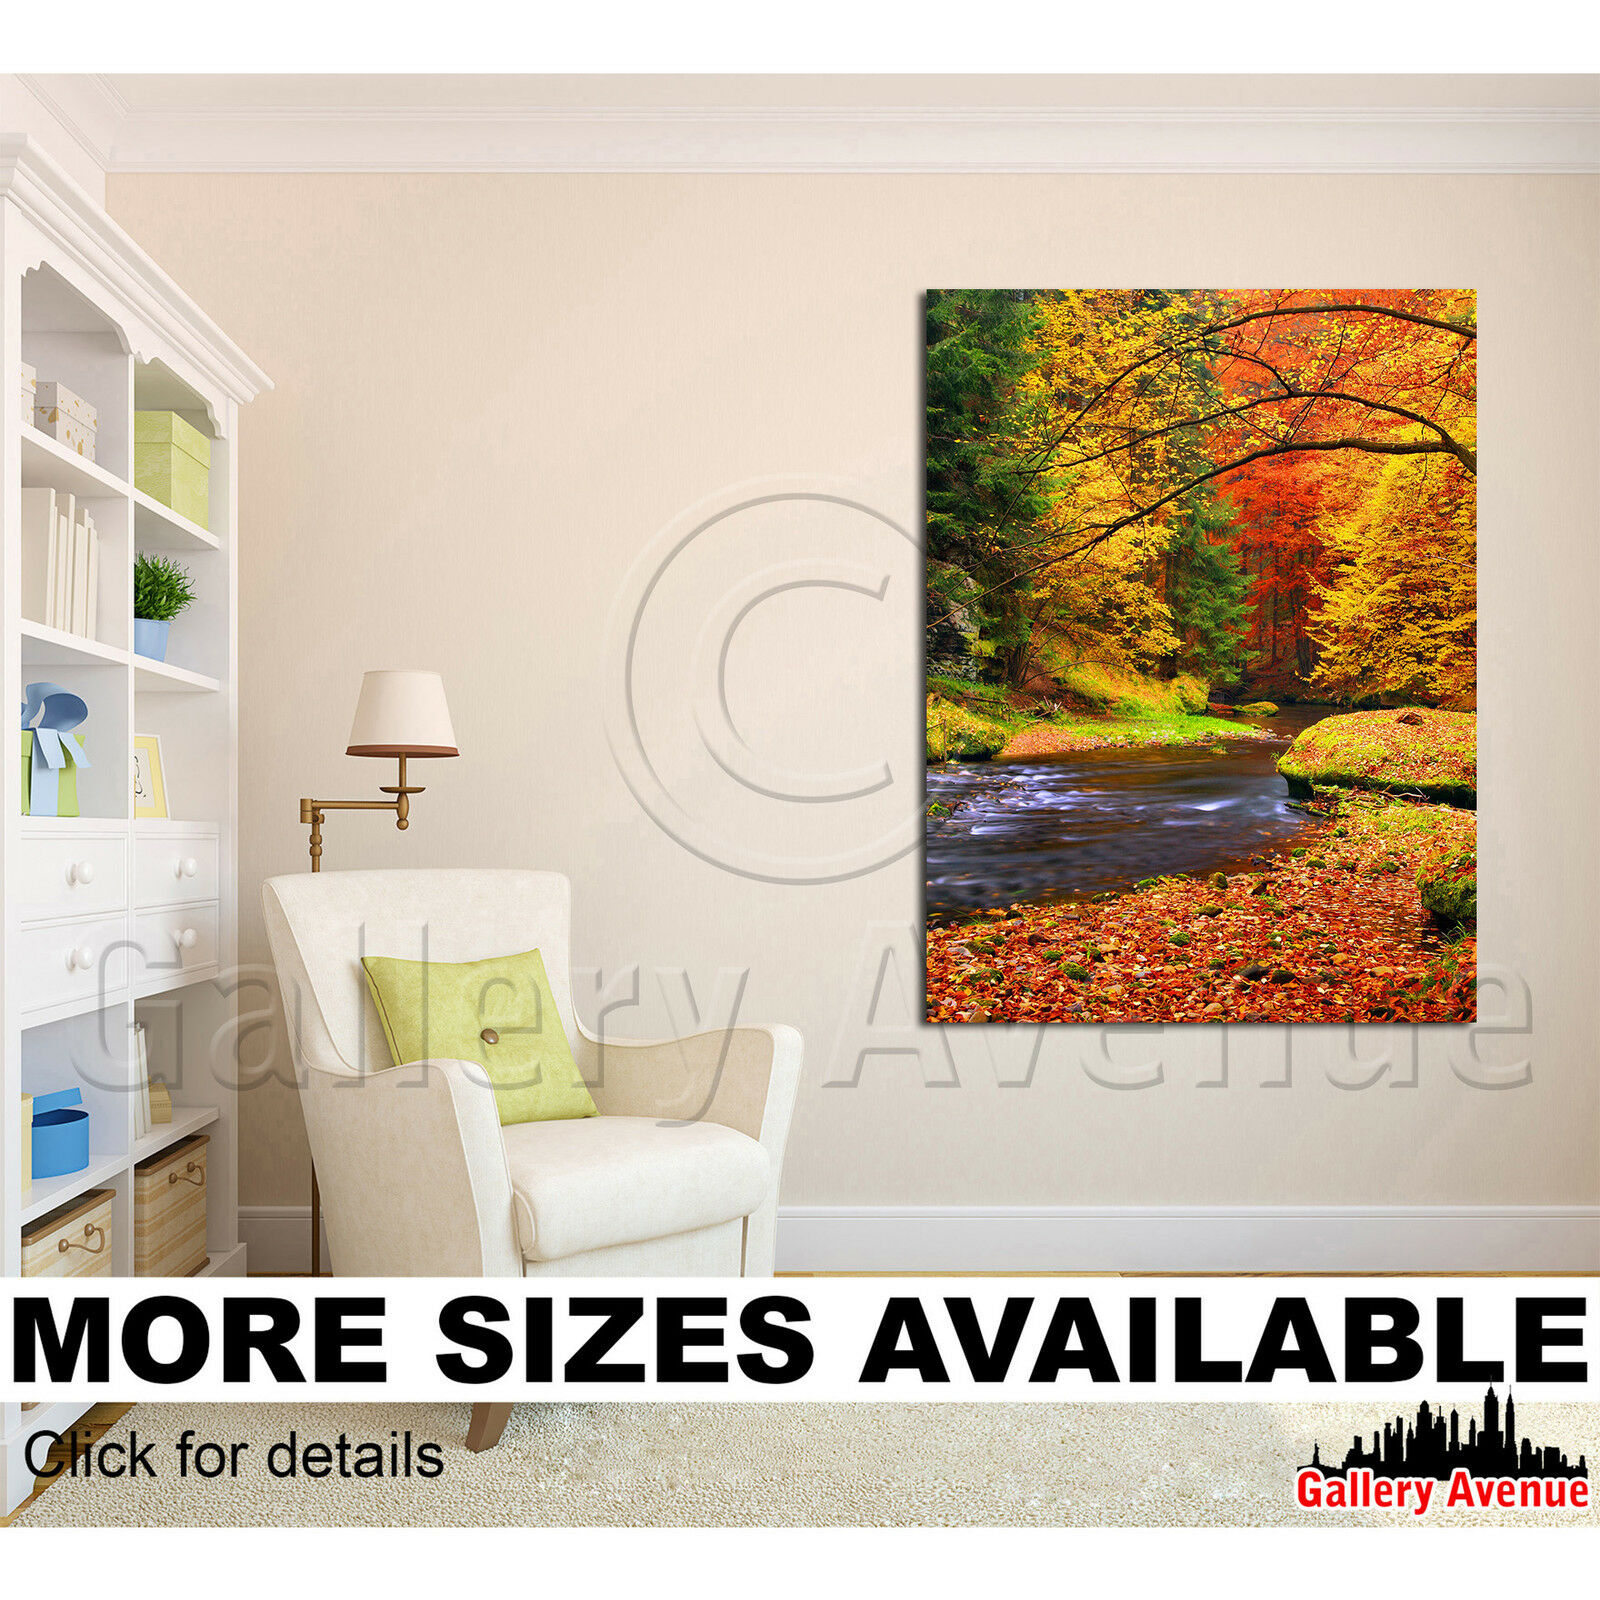 A Wall Art Canvas Picture Print - Autumn leaves Morning River 3.4